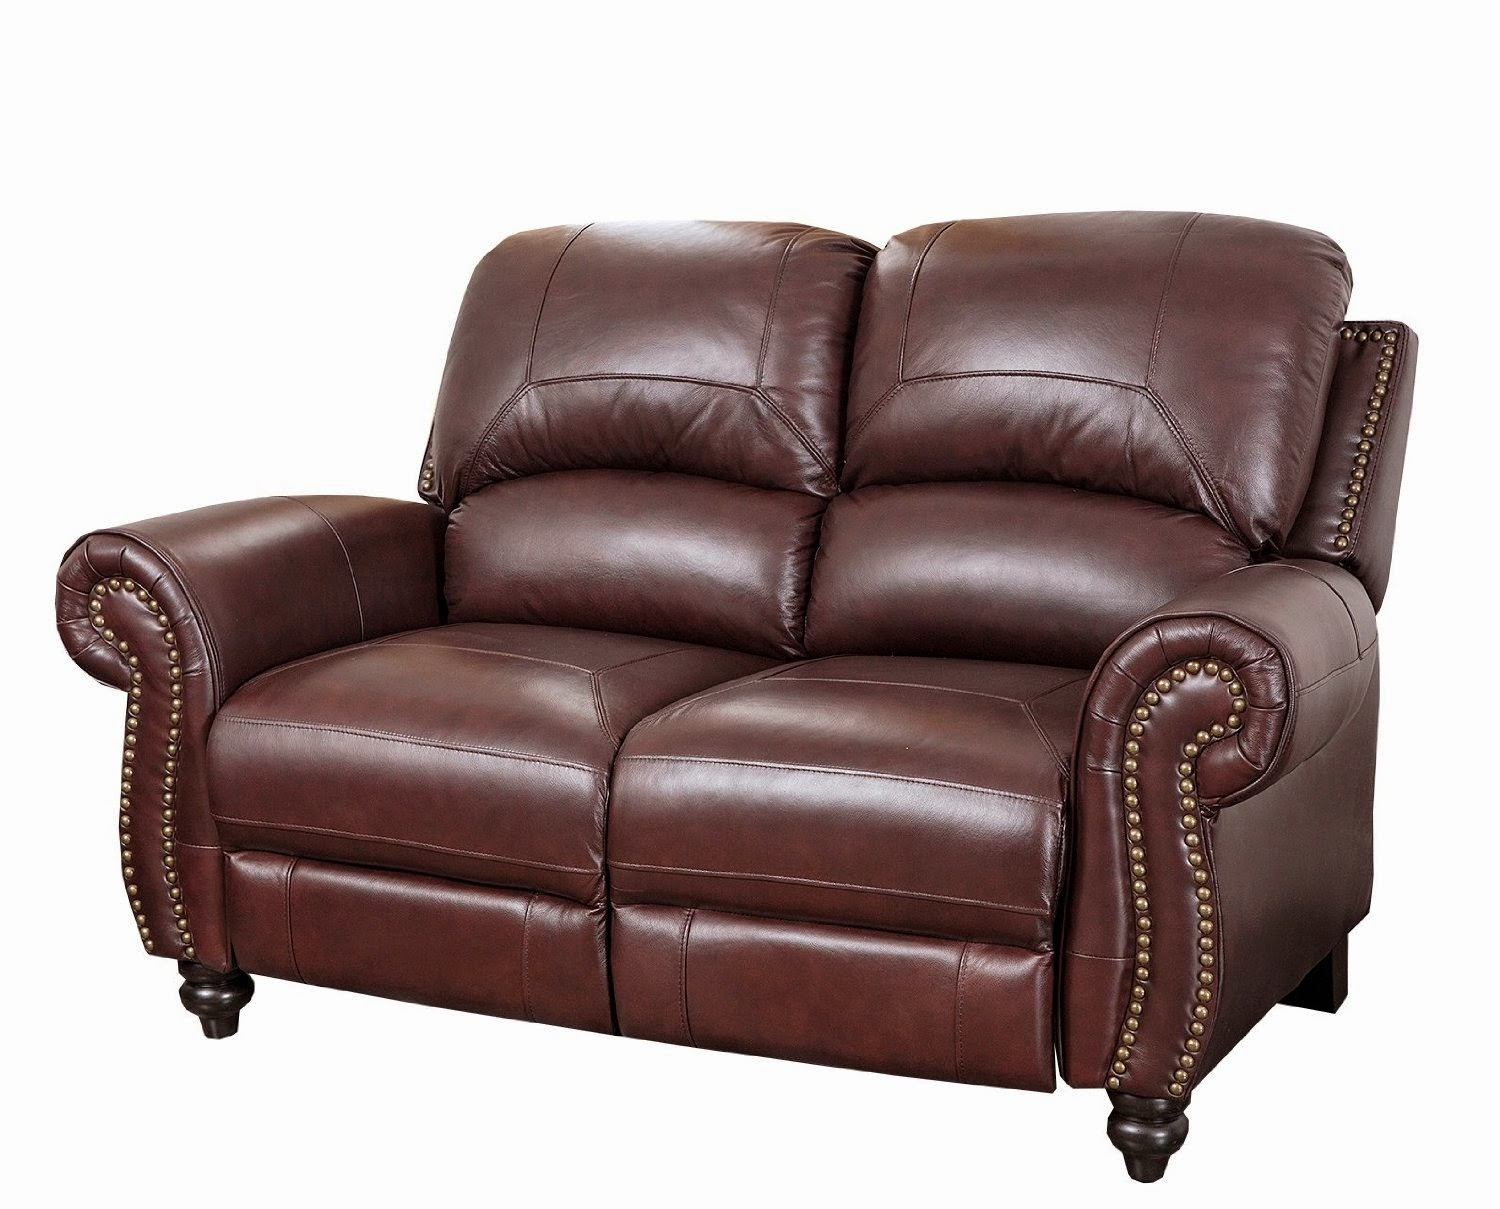 Best Reclining Sofa For The Money: Vivaldi 2 Seater ...